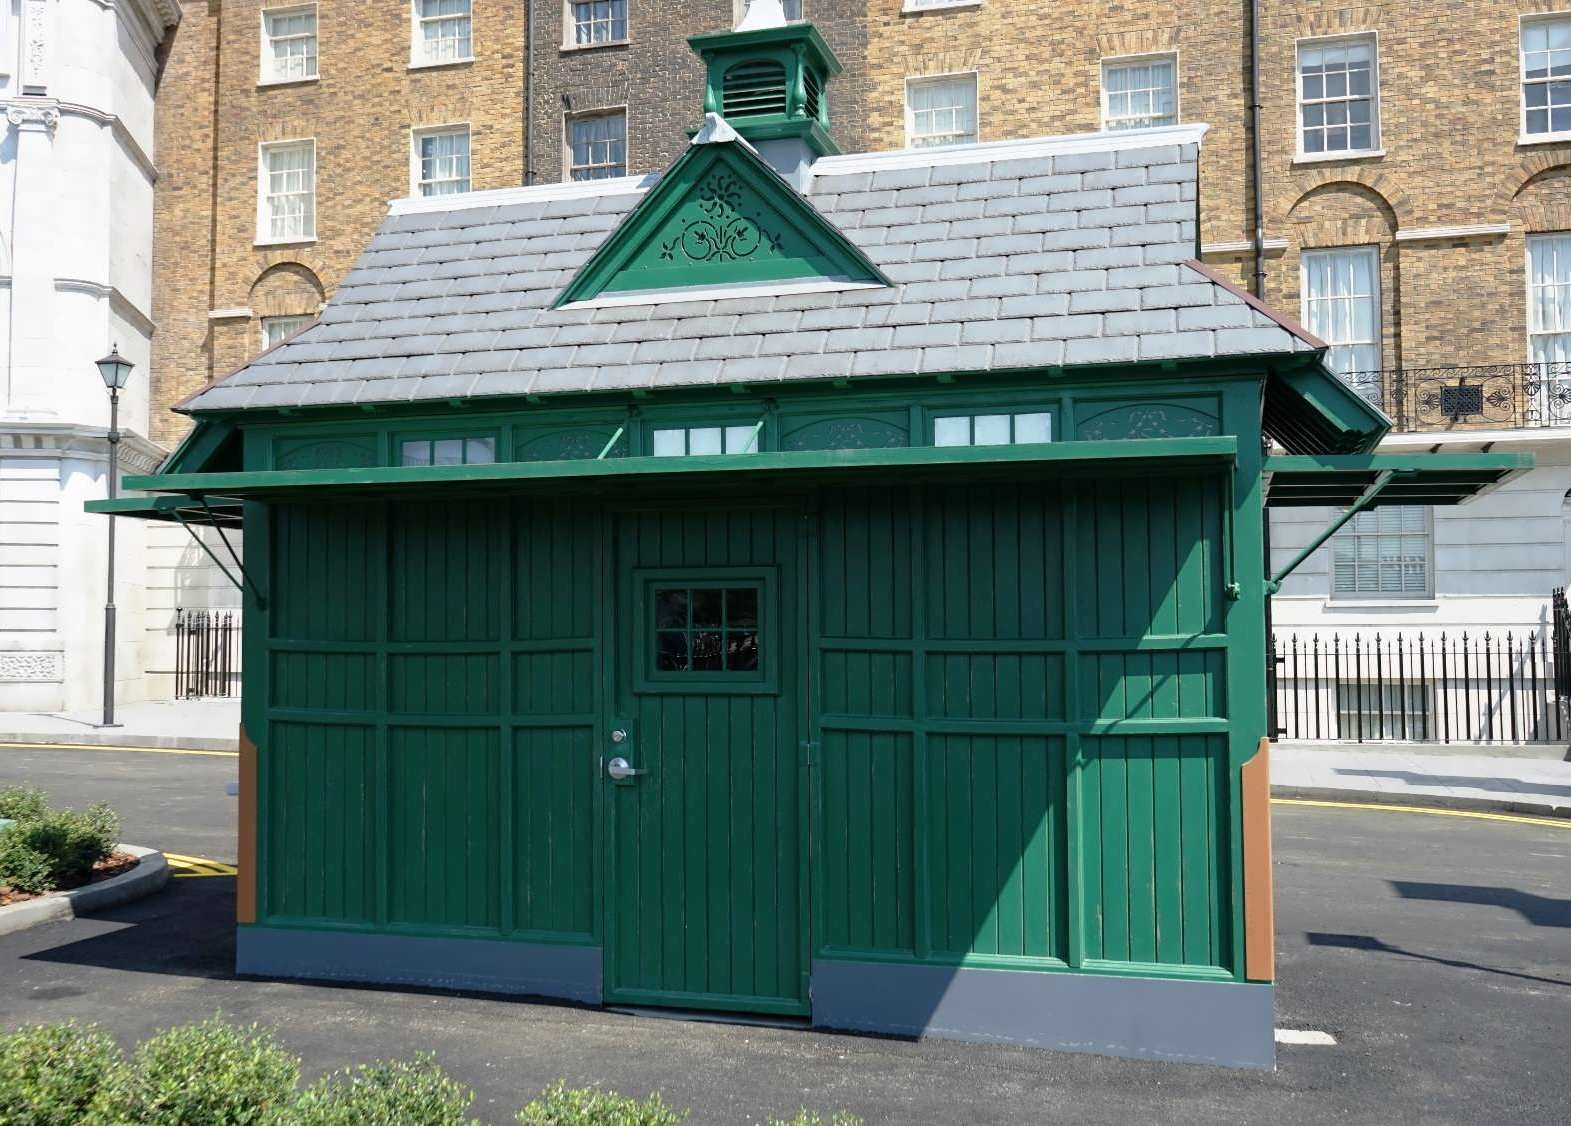 A Cabman's Shelter in Muggle London